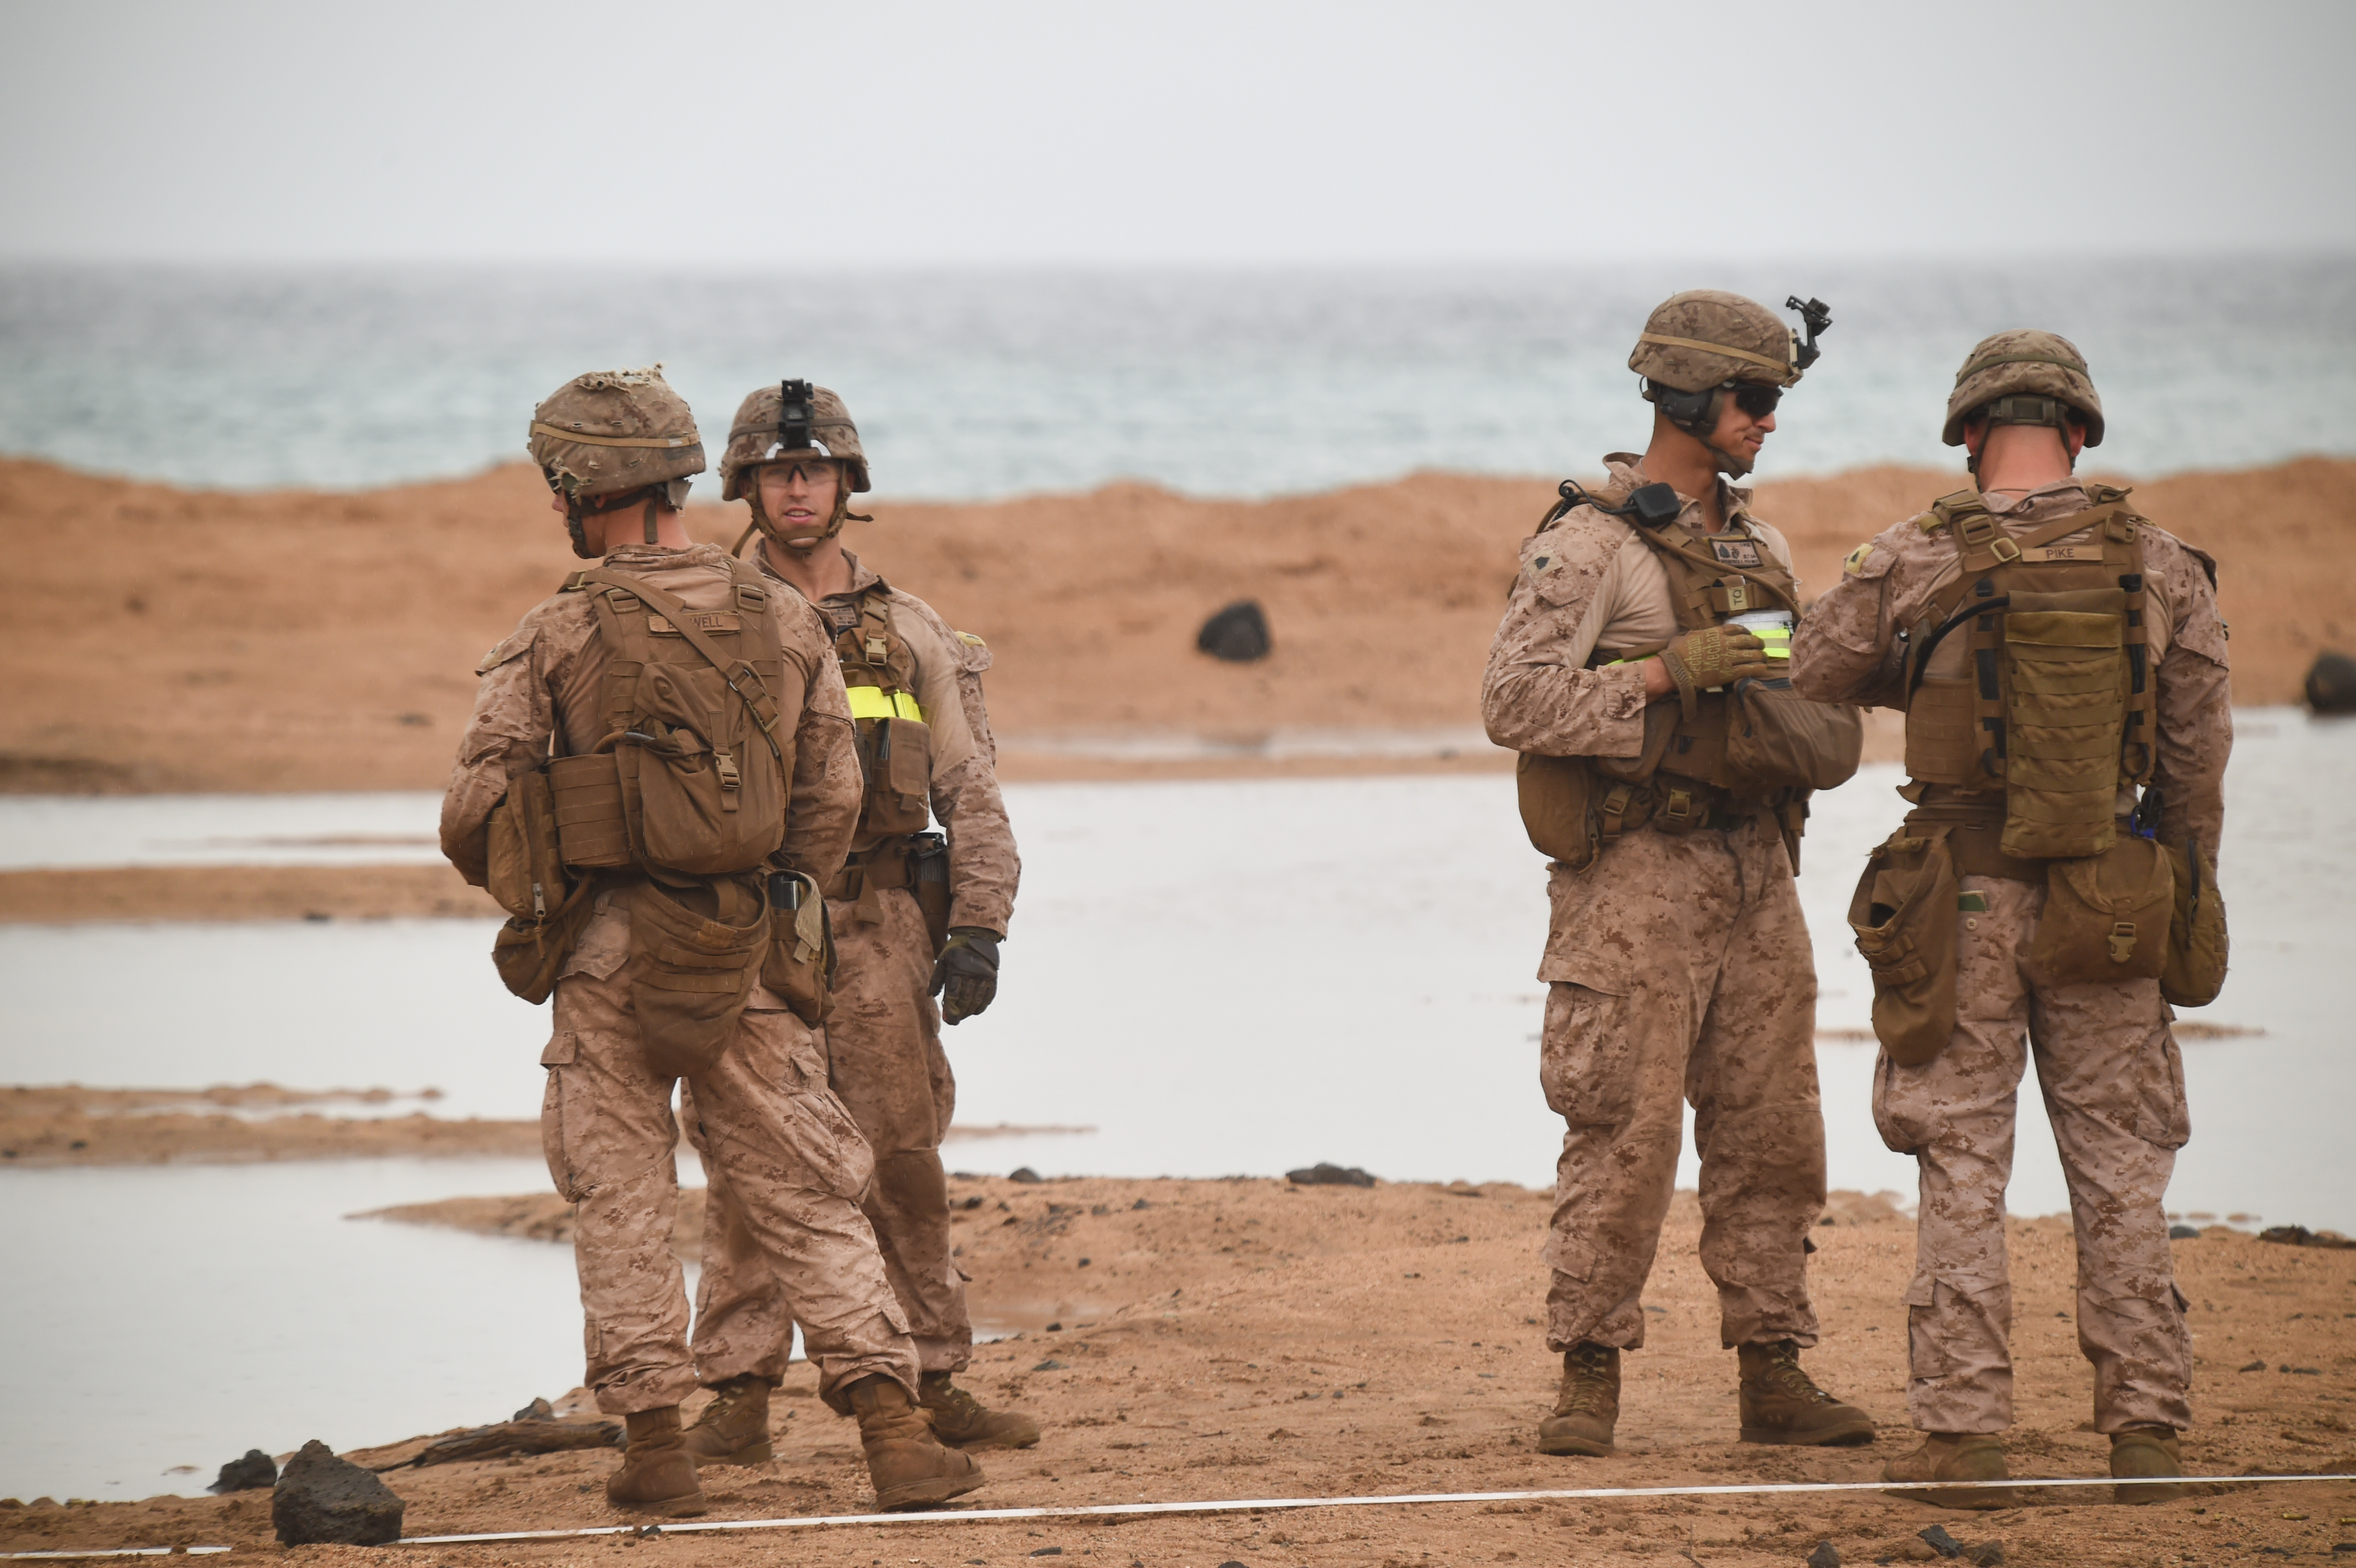 U.S. Marines with Alpha Company, 1st Battalion, 11th Marine Expeditionary Unit (MEU), stand at the edge of a range waiting for the next repetition of fire, Feb. 14, 2017, at Arta Beach in Djibouti. Marines worked on engaging a target while moving and under physical stress. A MEU is a forward-deployed, flexible sea-based Marine air-ground task force ready to respond to crisis and conduct limited contingency operations. (U.S. Air National Guard photo by Staff Sgt. Penny Snoozy)